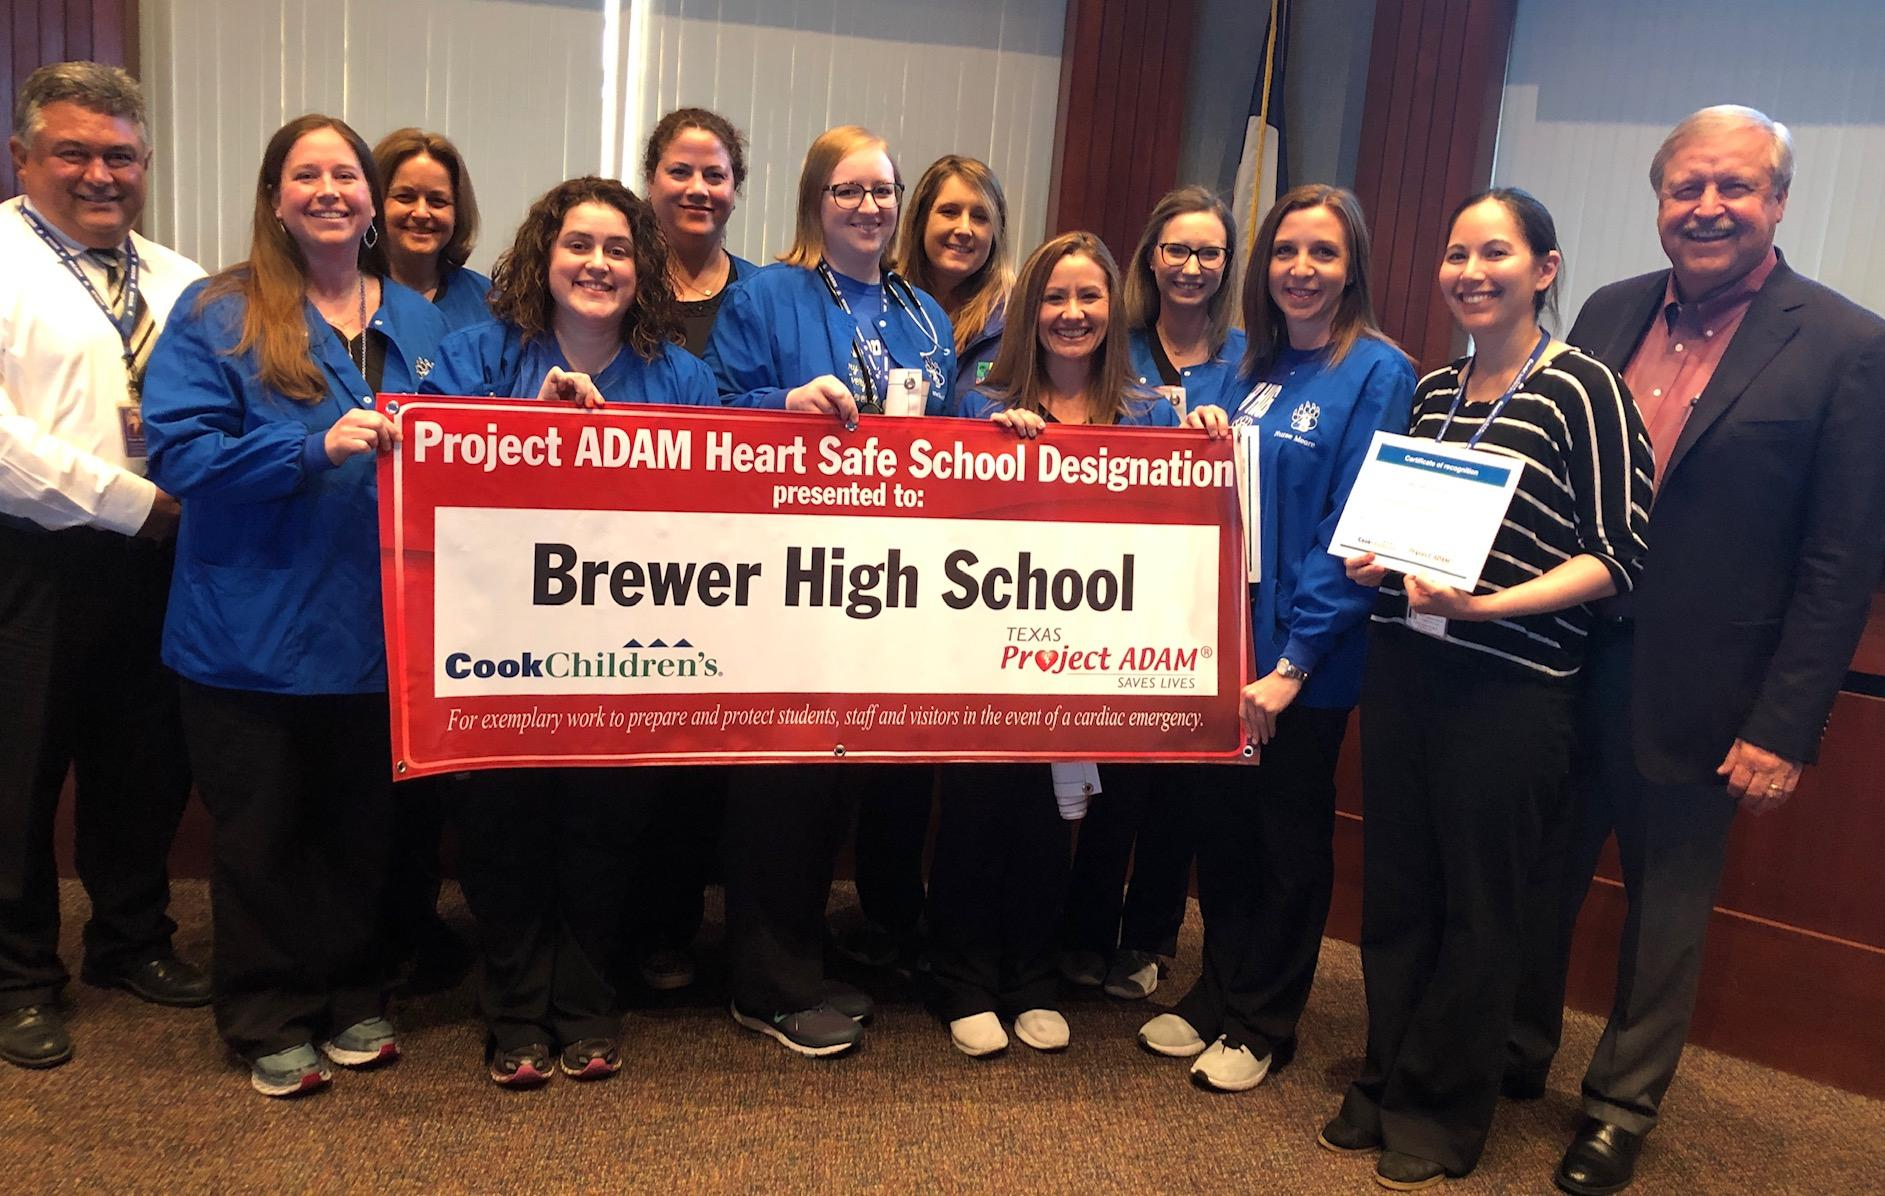 White Settlement ISD was recognized as a Project ADAM School District during the March 25 school board meeting, and every WSISD school was named a Project ADAM Safe School.